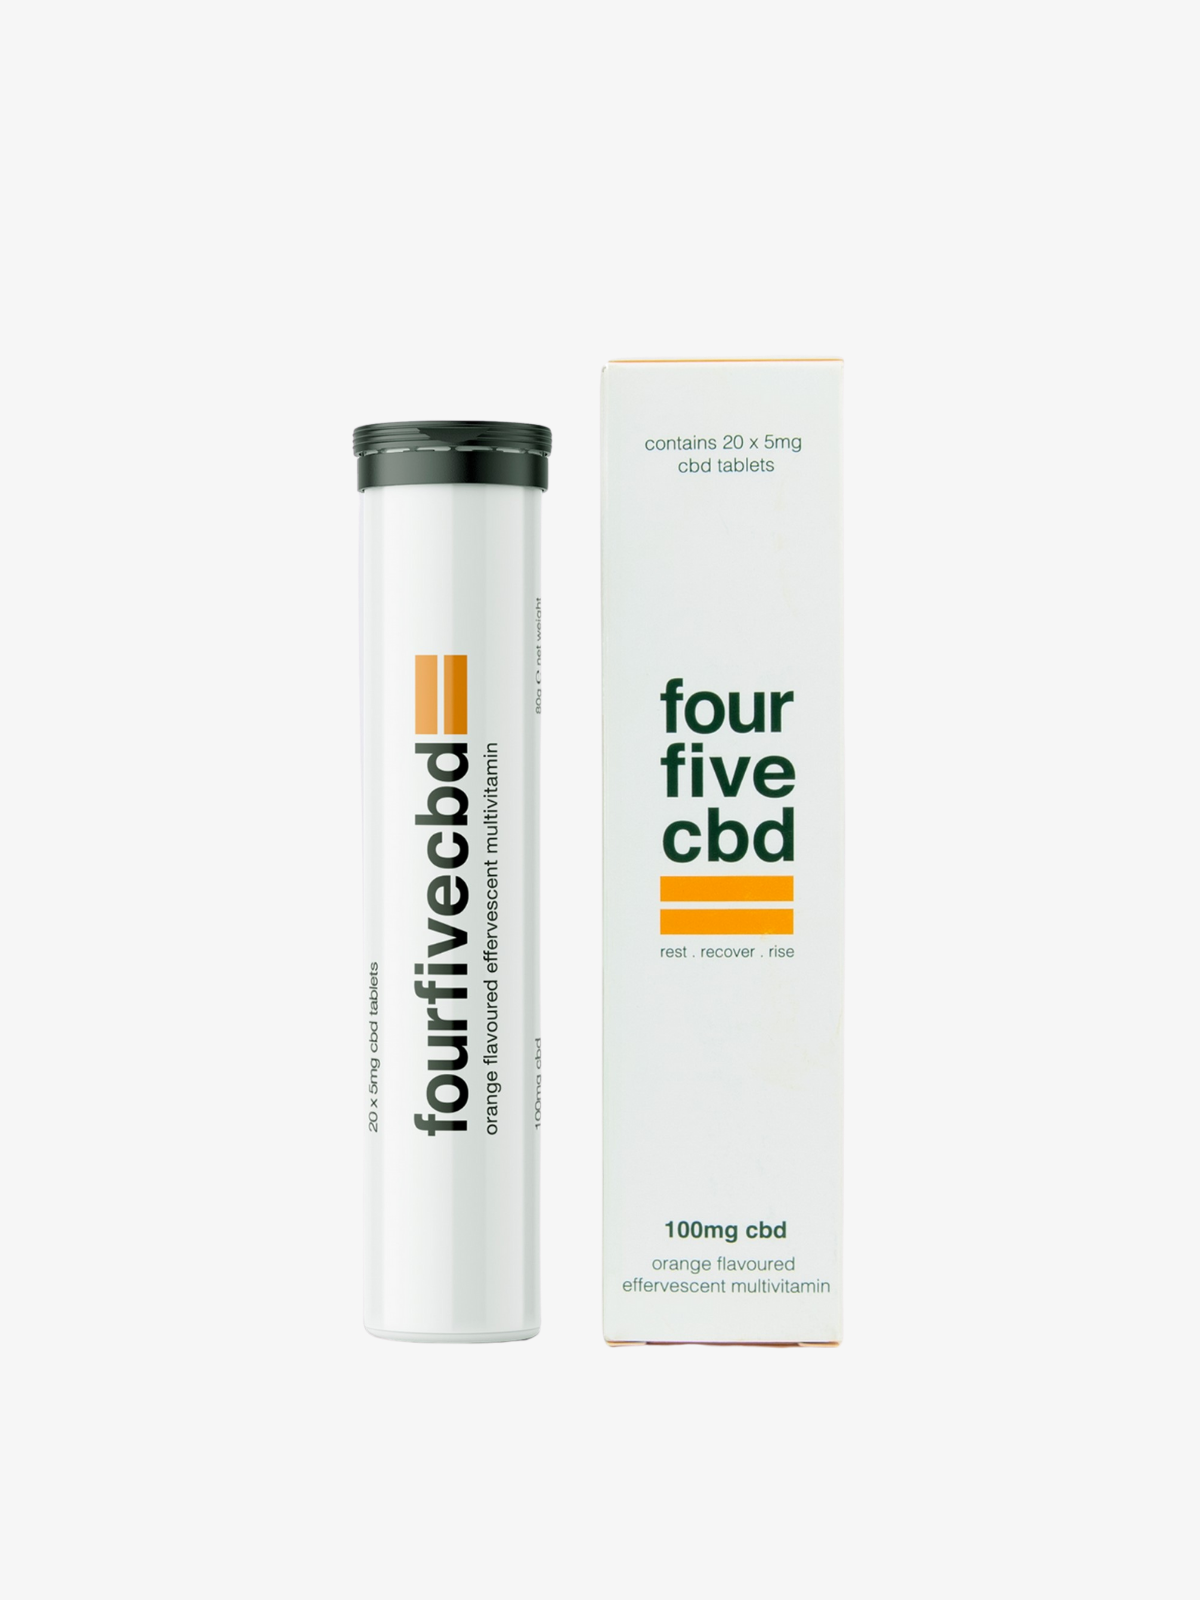 FourFive CBD Effervescent Multivitamin